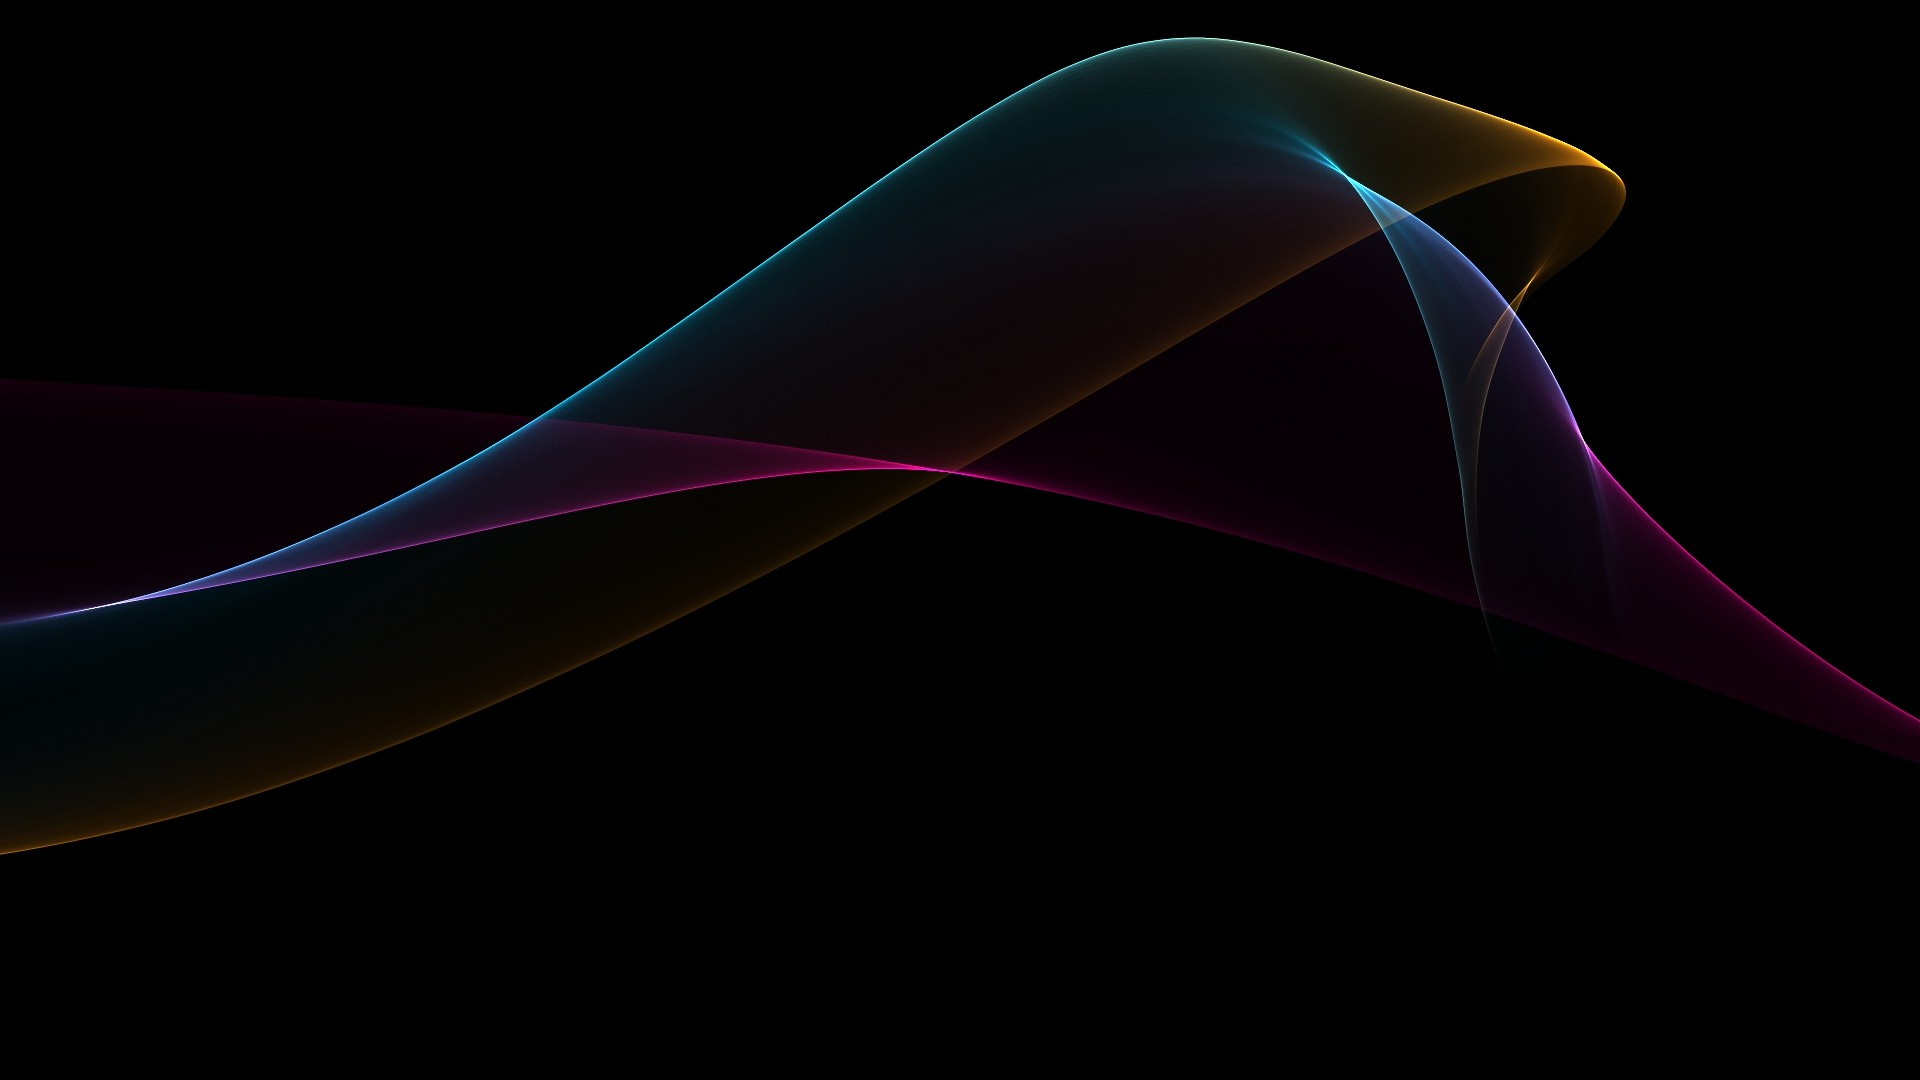 abstract wallpapers wallpaper hqpictures - photo #47